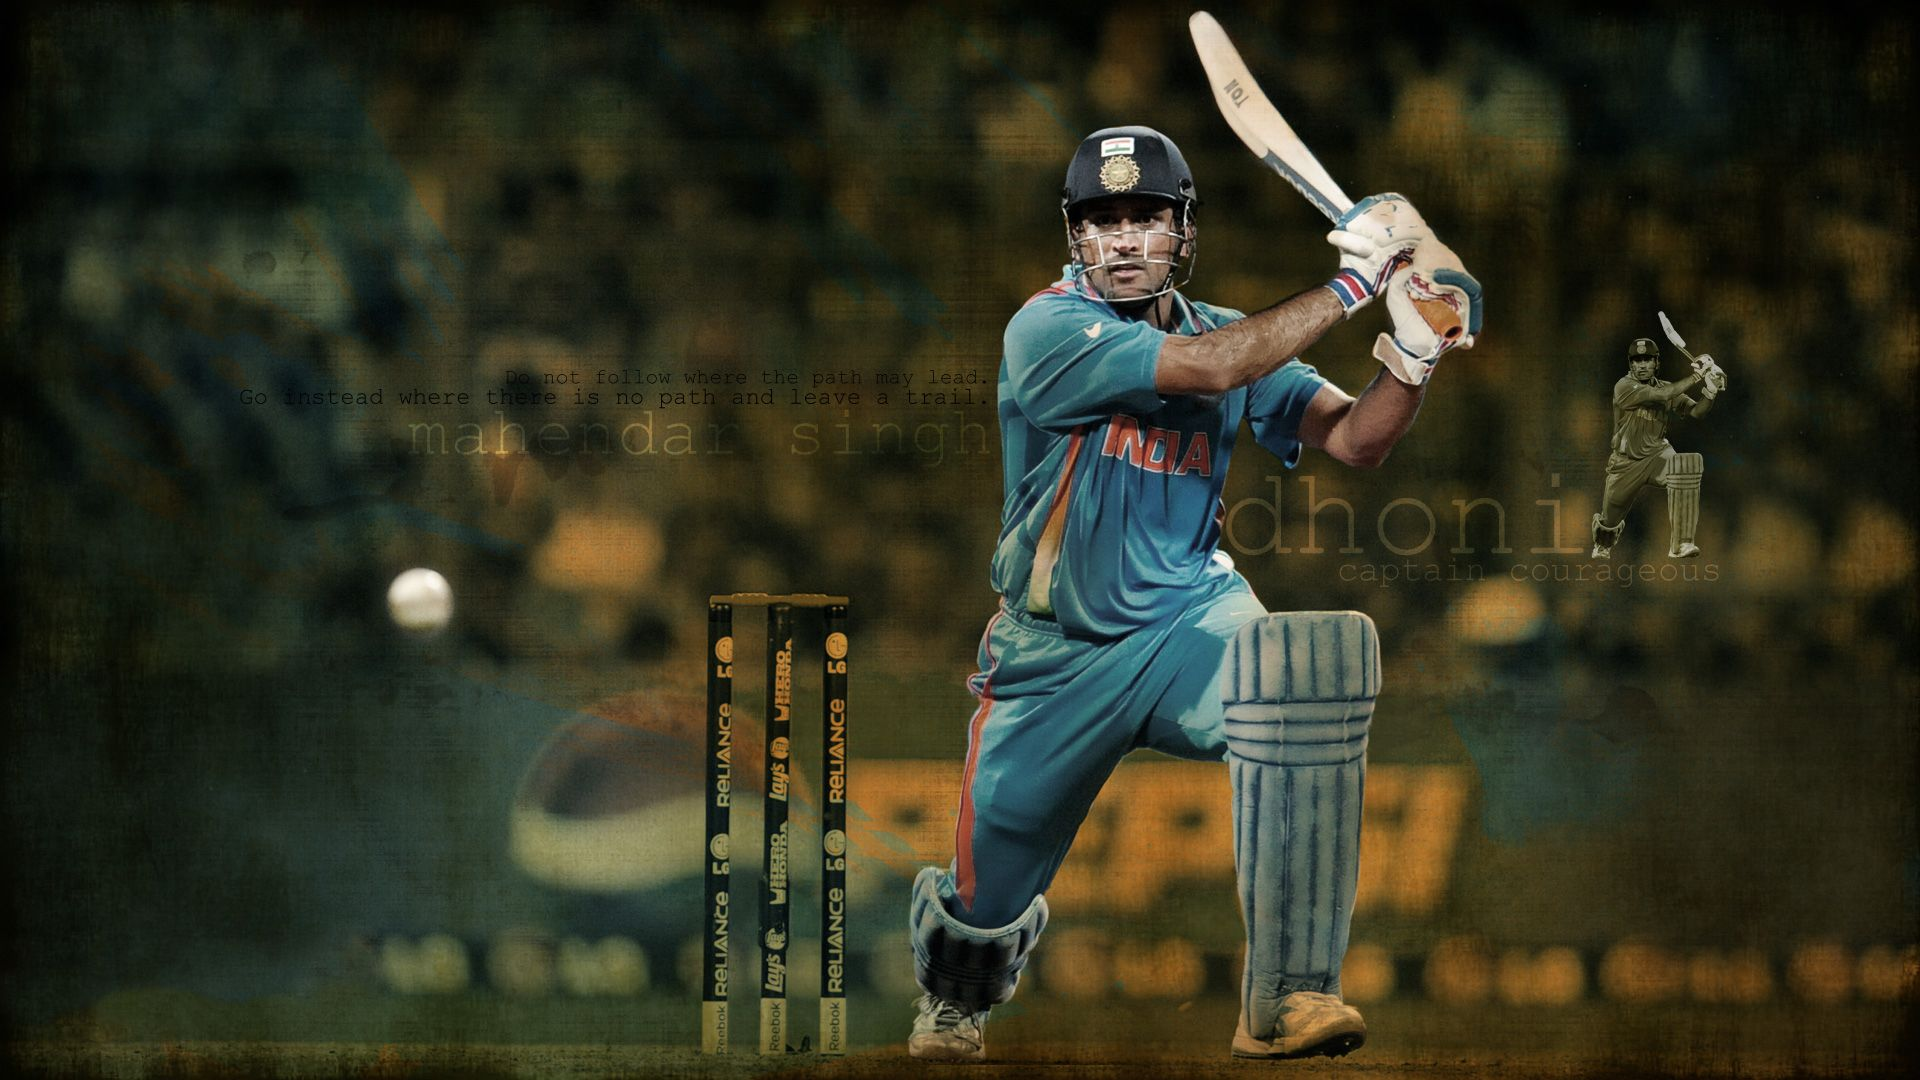 Wallpaper download cricket - Cricket Wallpapers Wallpaper Cave